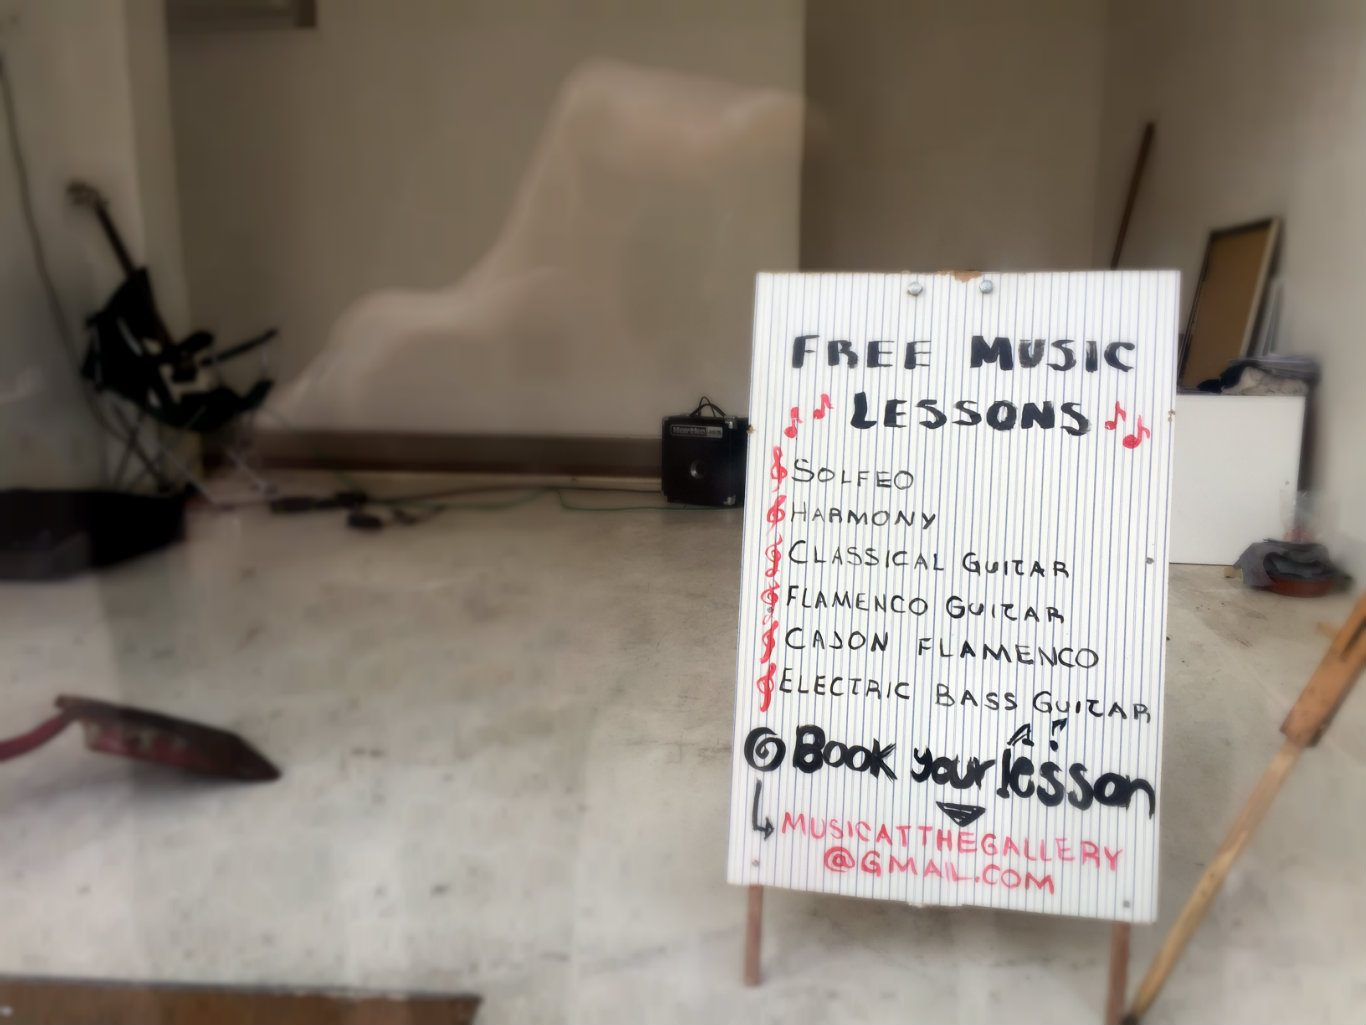 The gang are offering free music lessons. Photo: SE